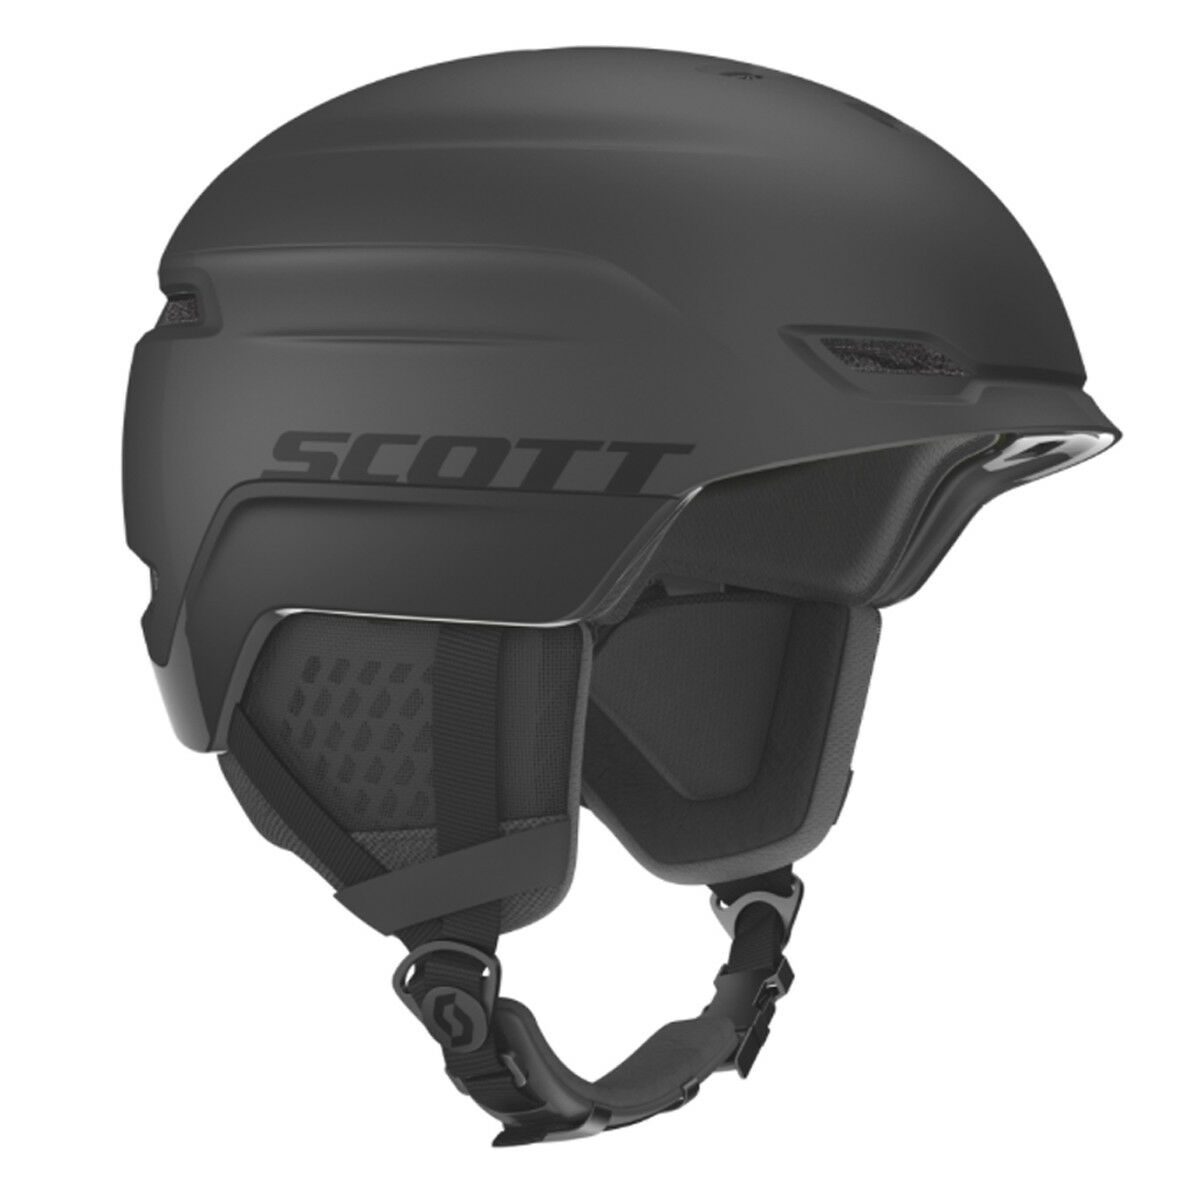 Scott Chase 2 Plus Ski Helmet - Various Farbes (NEW) Lists @  150